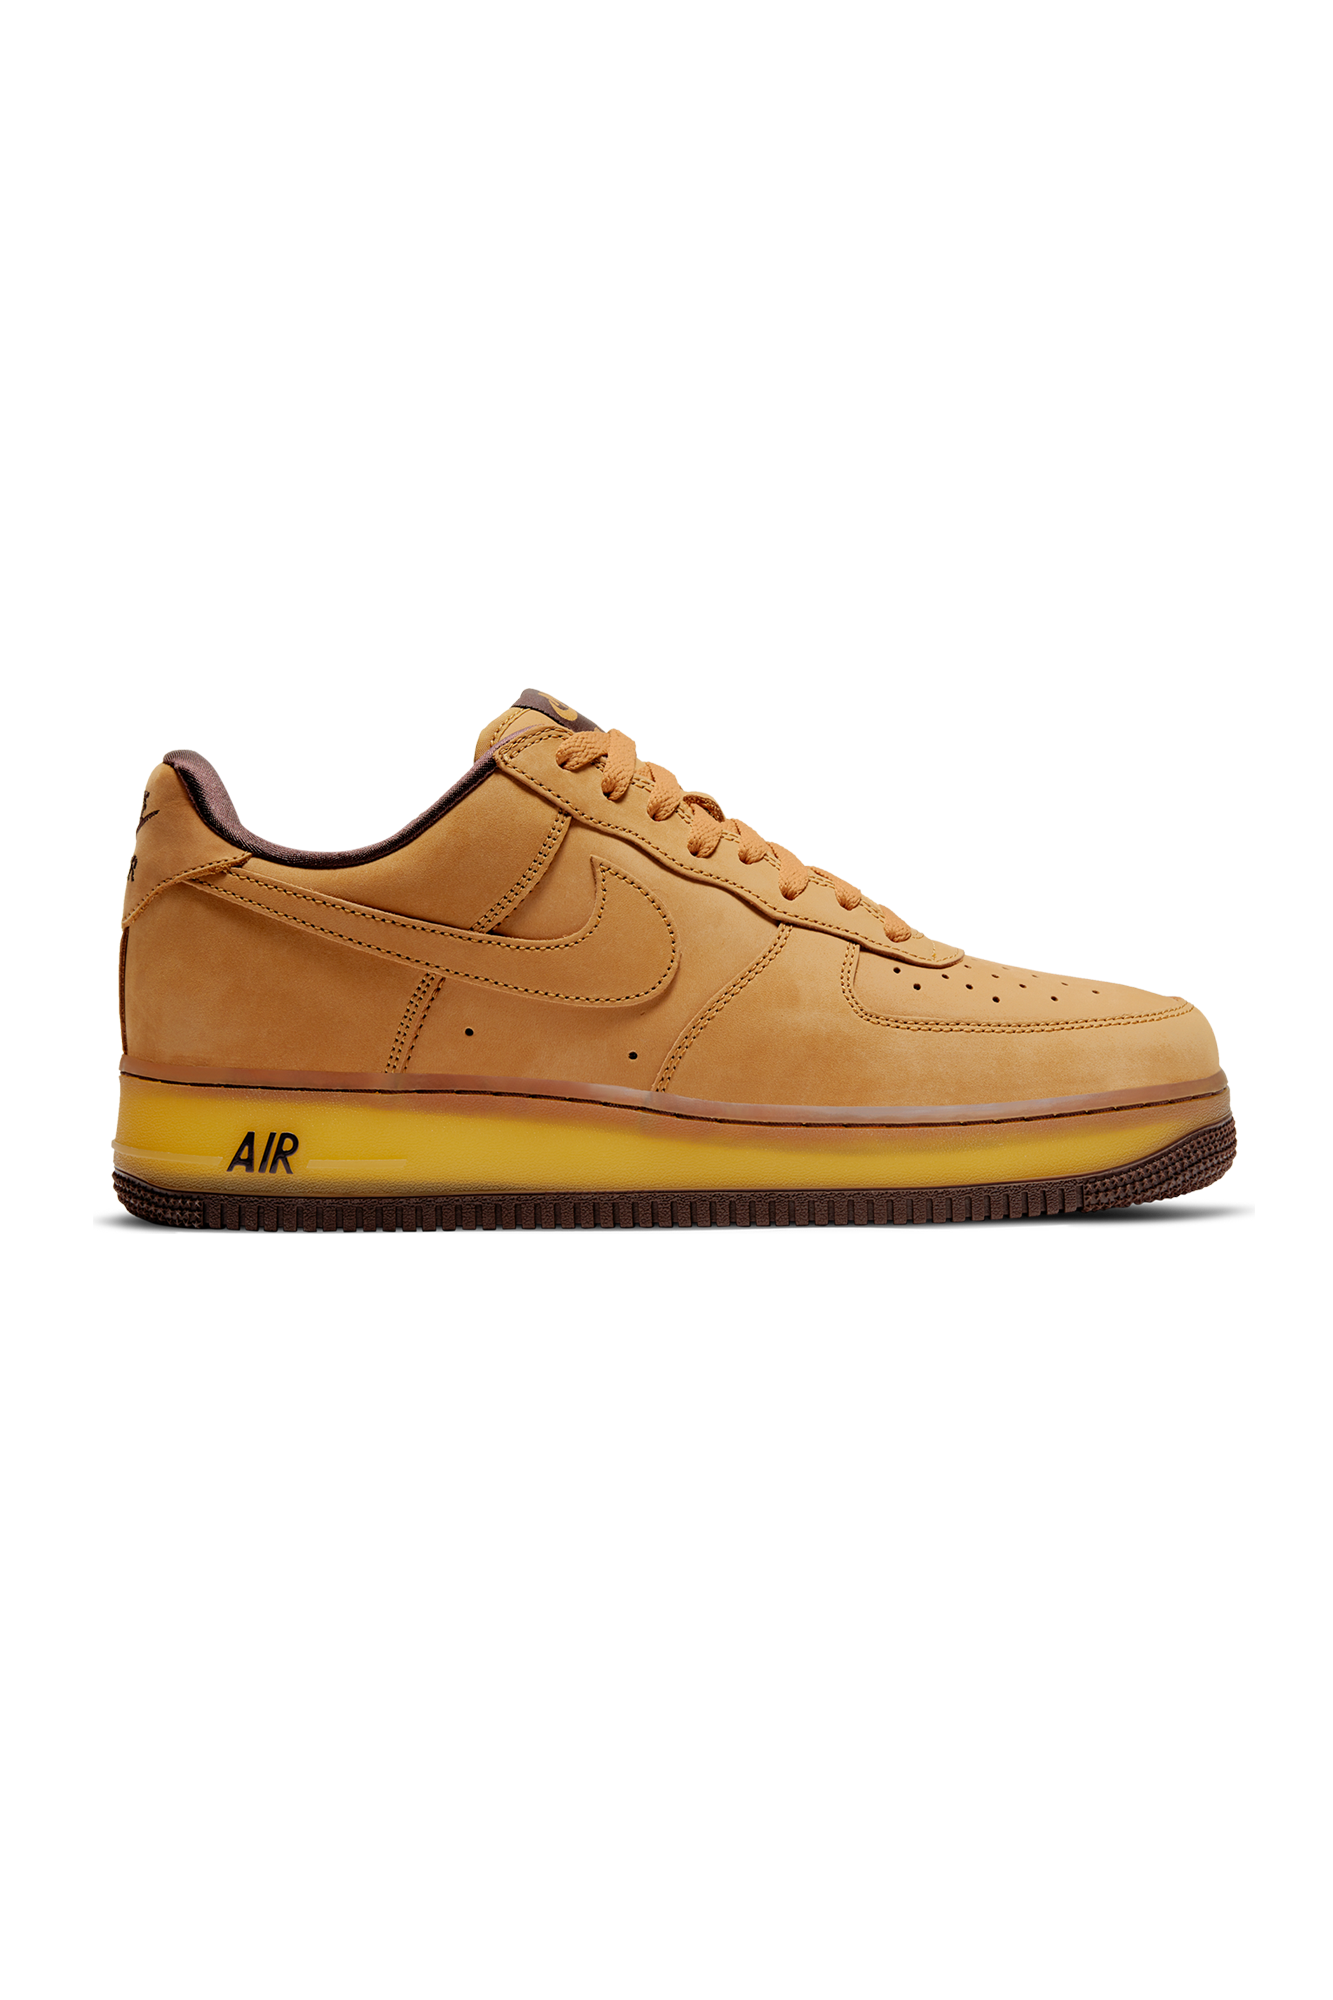 "Nike Sneakers Air Force 1 Low Retro SP ""Wheat Mocha"" Marrone DC7504-#000#700#5 - One Block Down"